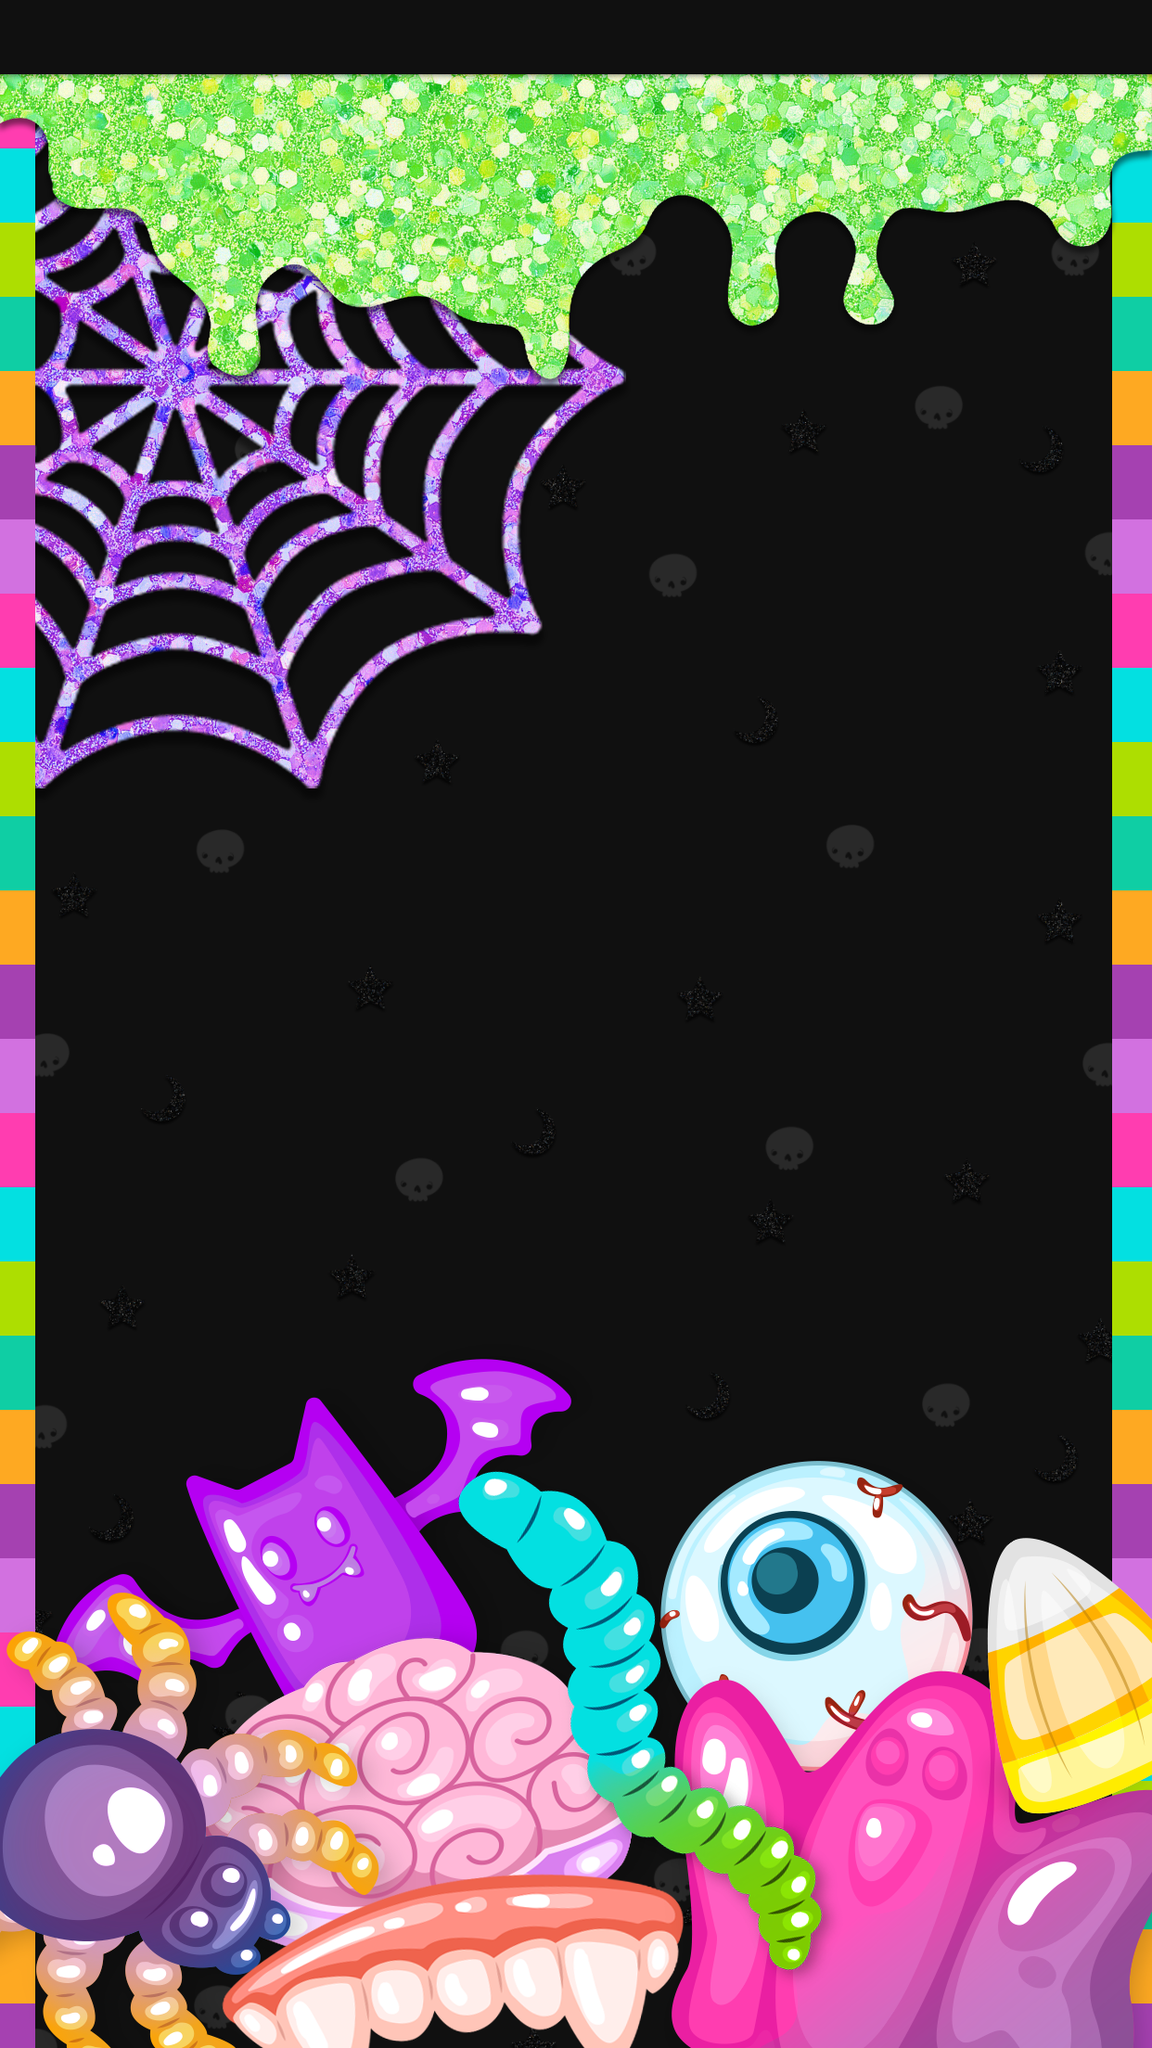 iPhone Wall: Halloween tjn (With images) | Halloween ...